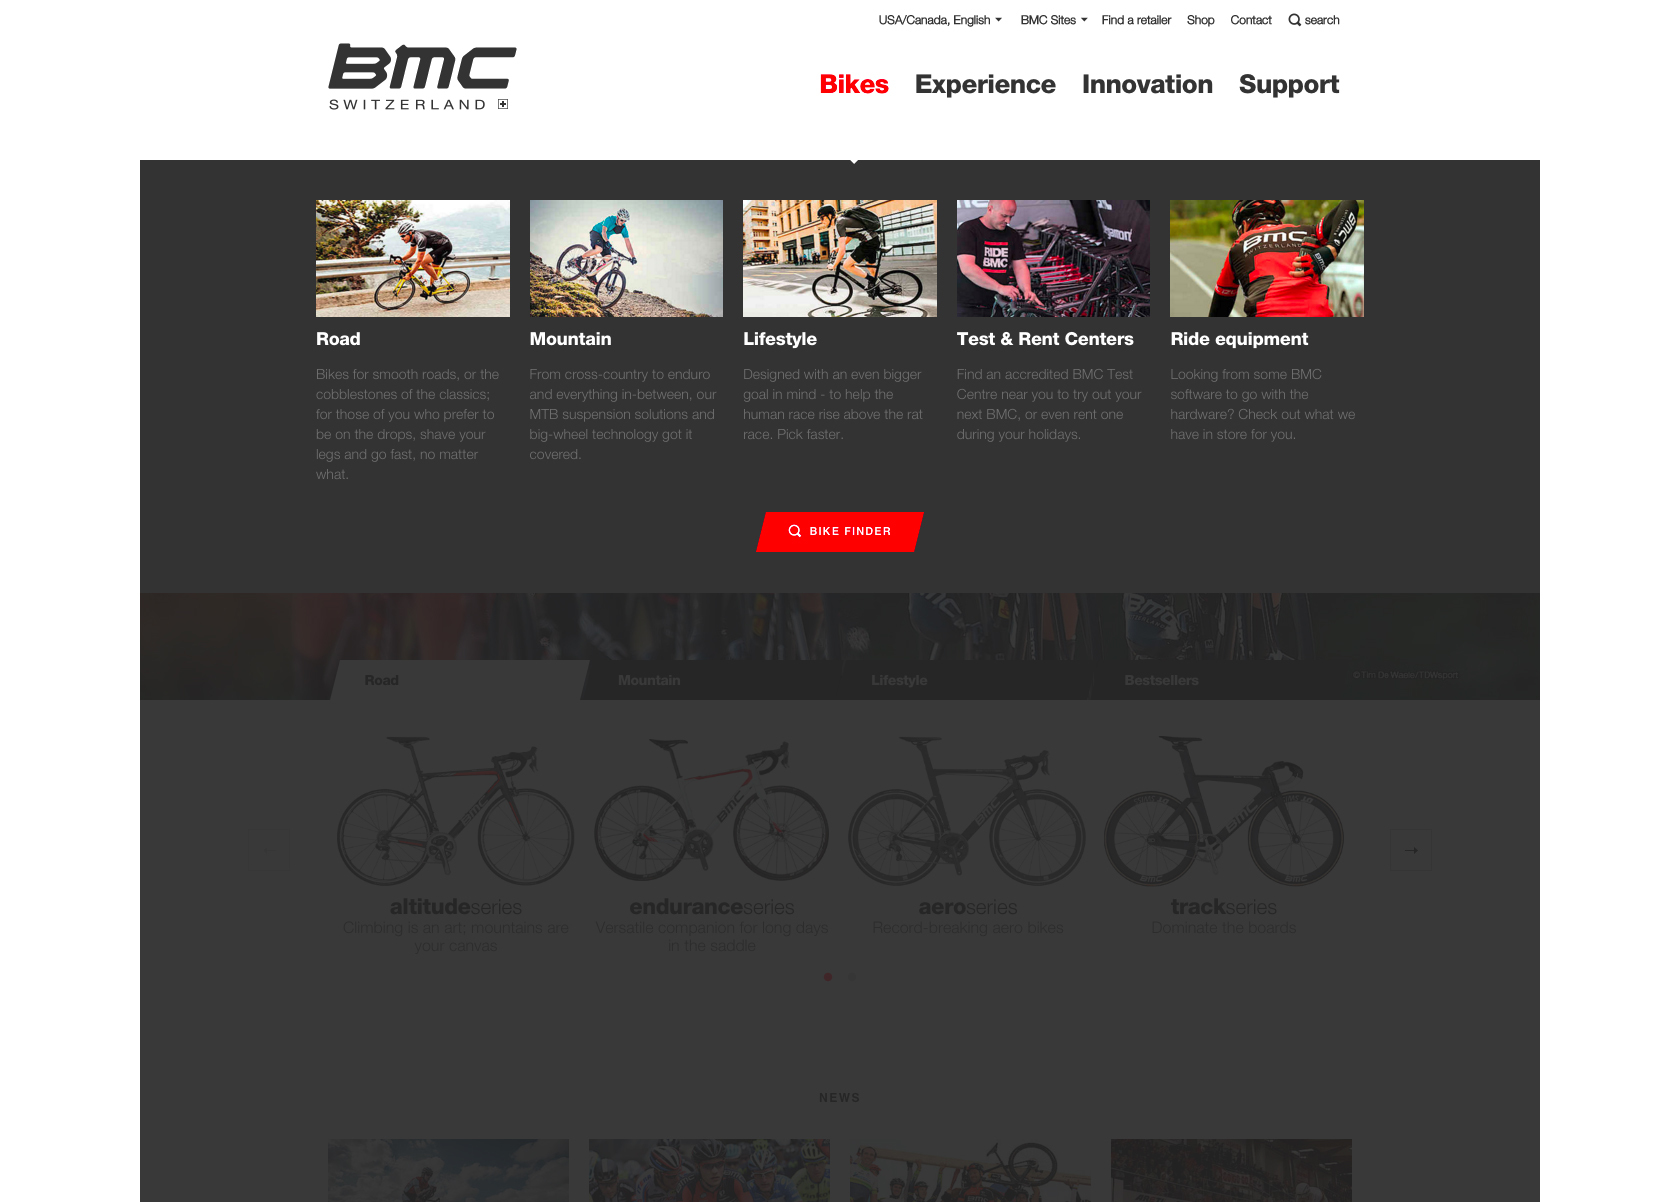 Bmc Switzerland 02